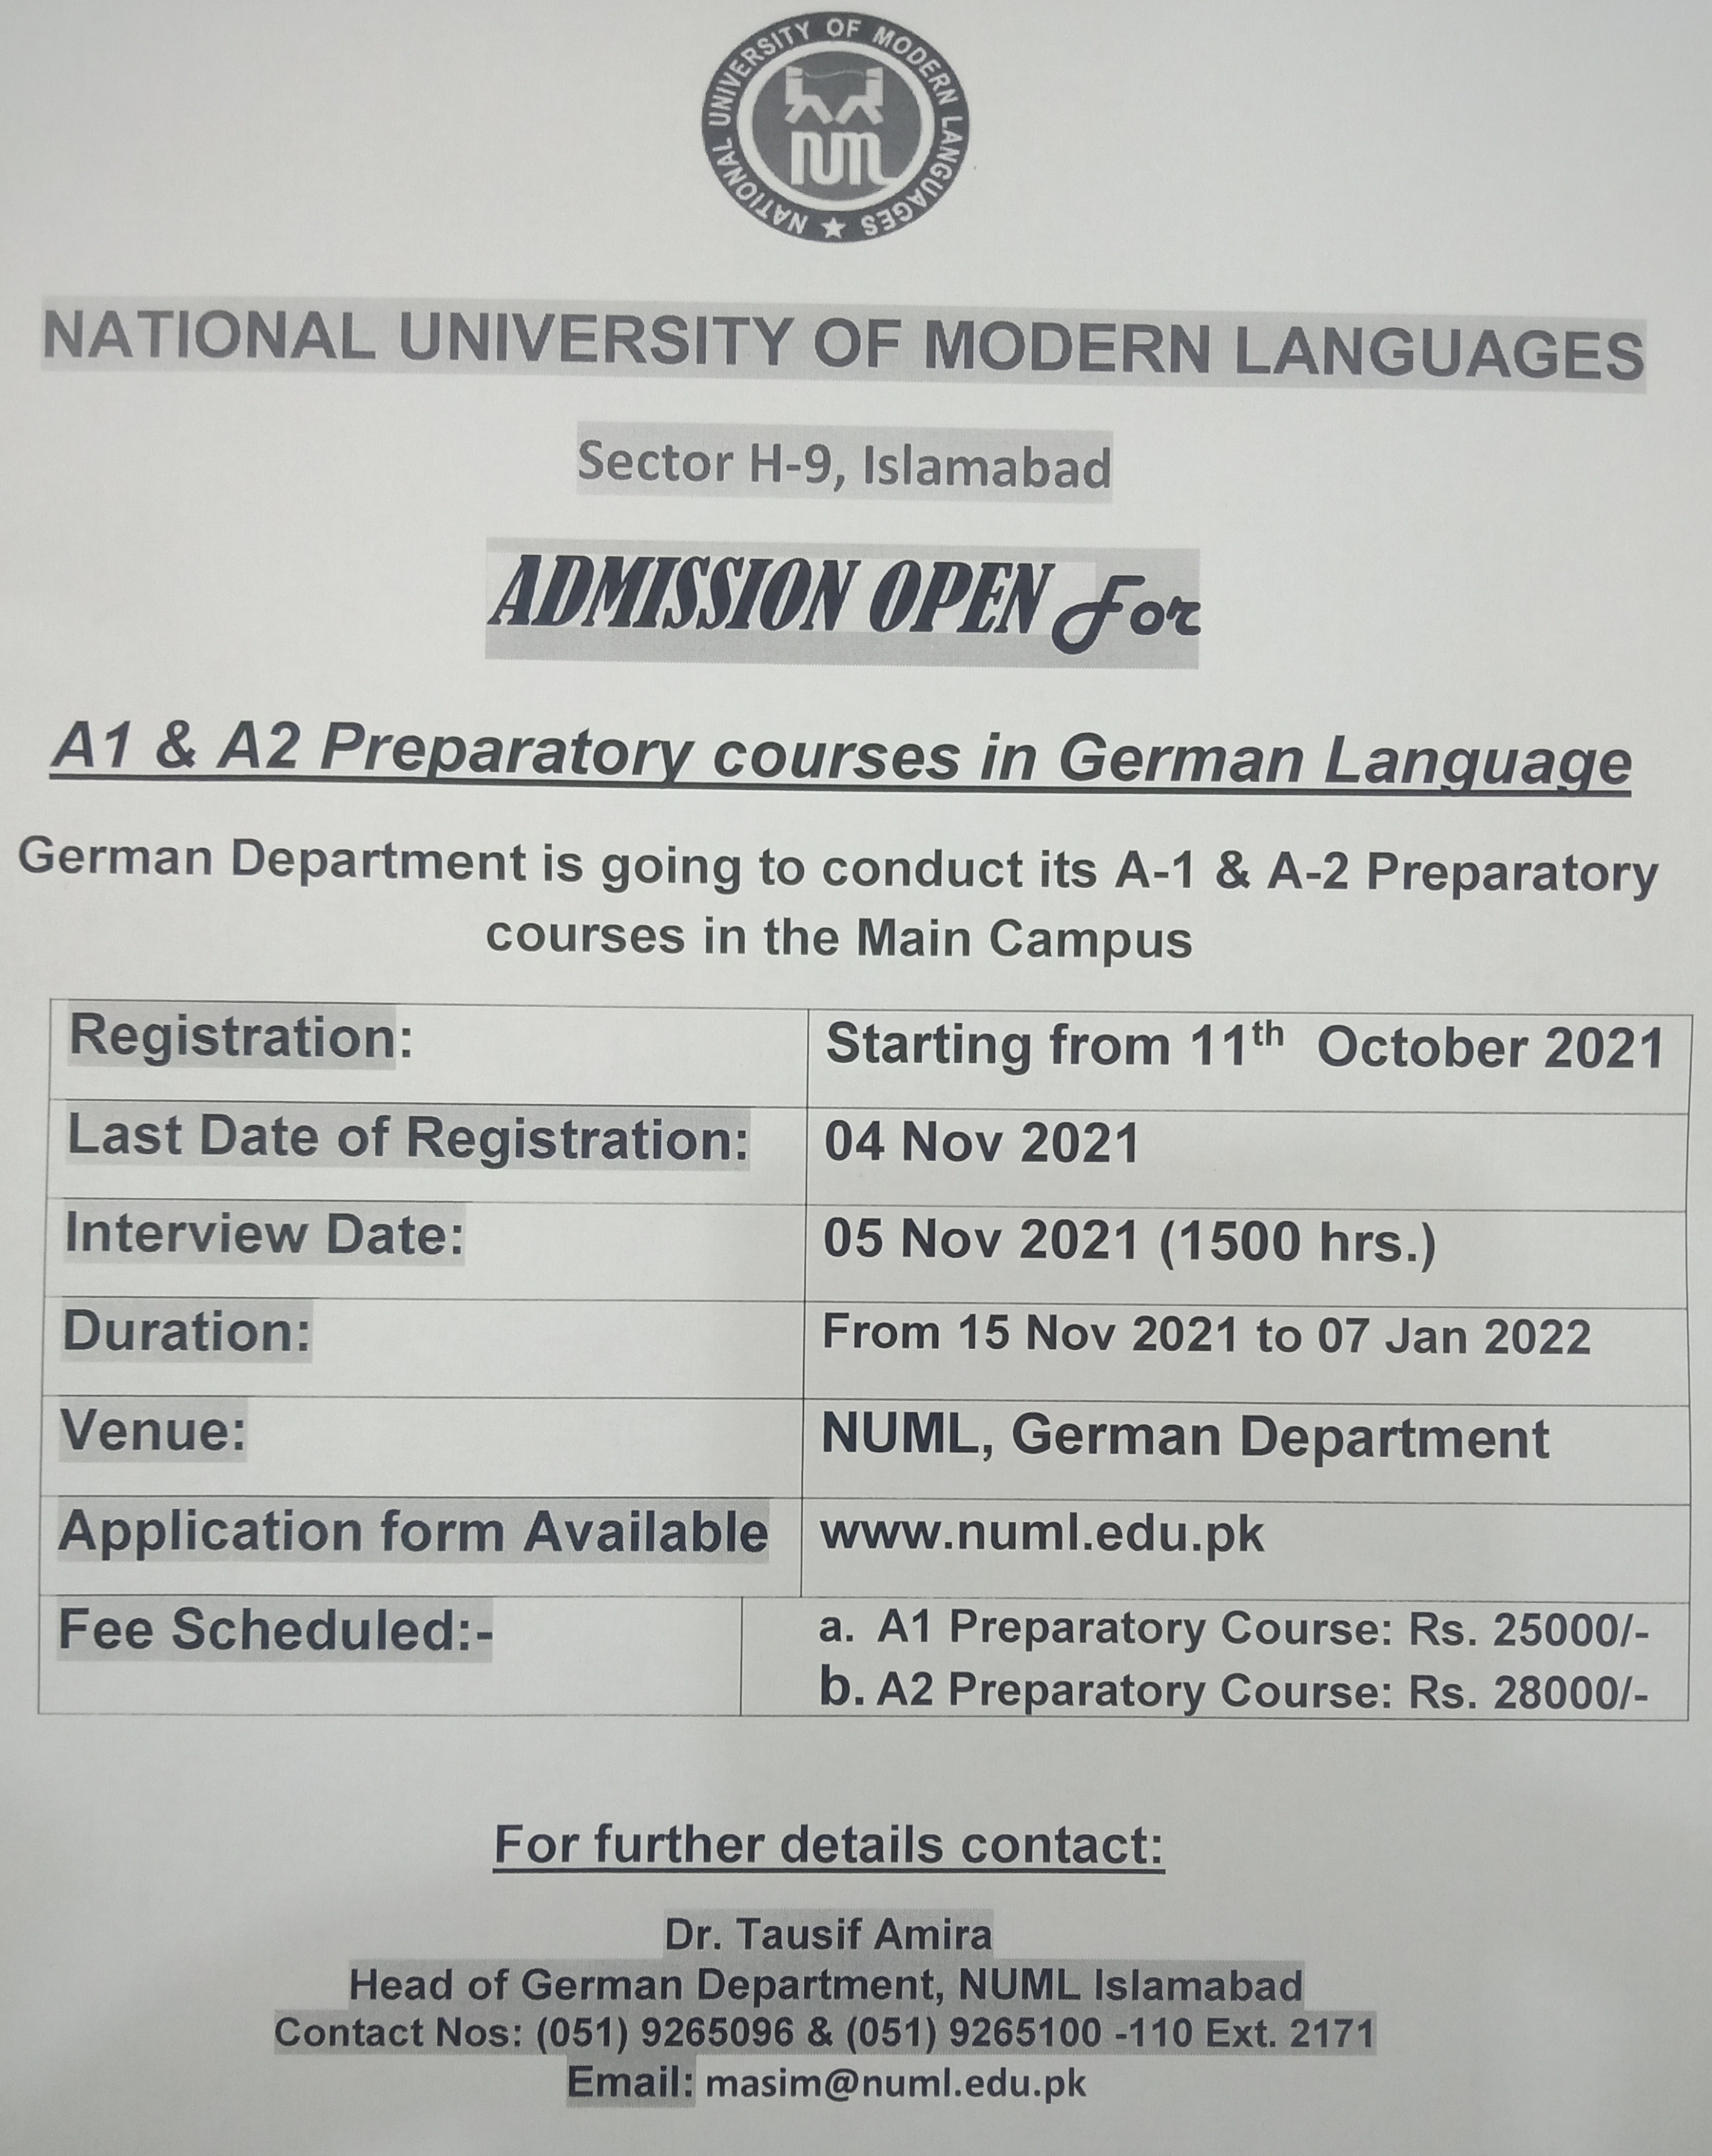 ADMISSION OPEN For A1, A2 Preparatory courses in German Language